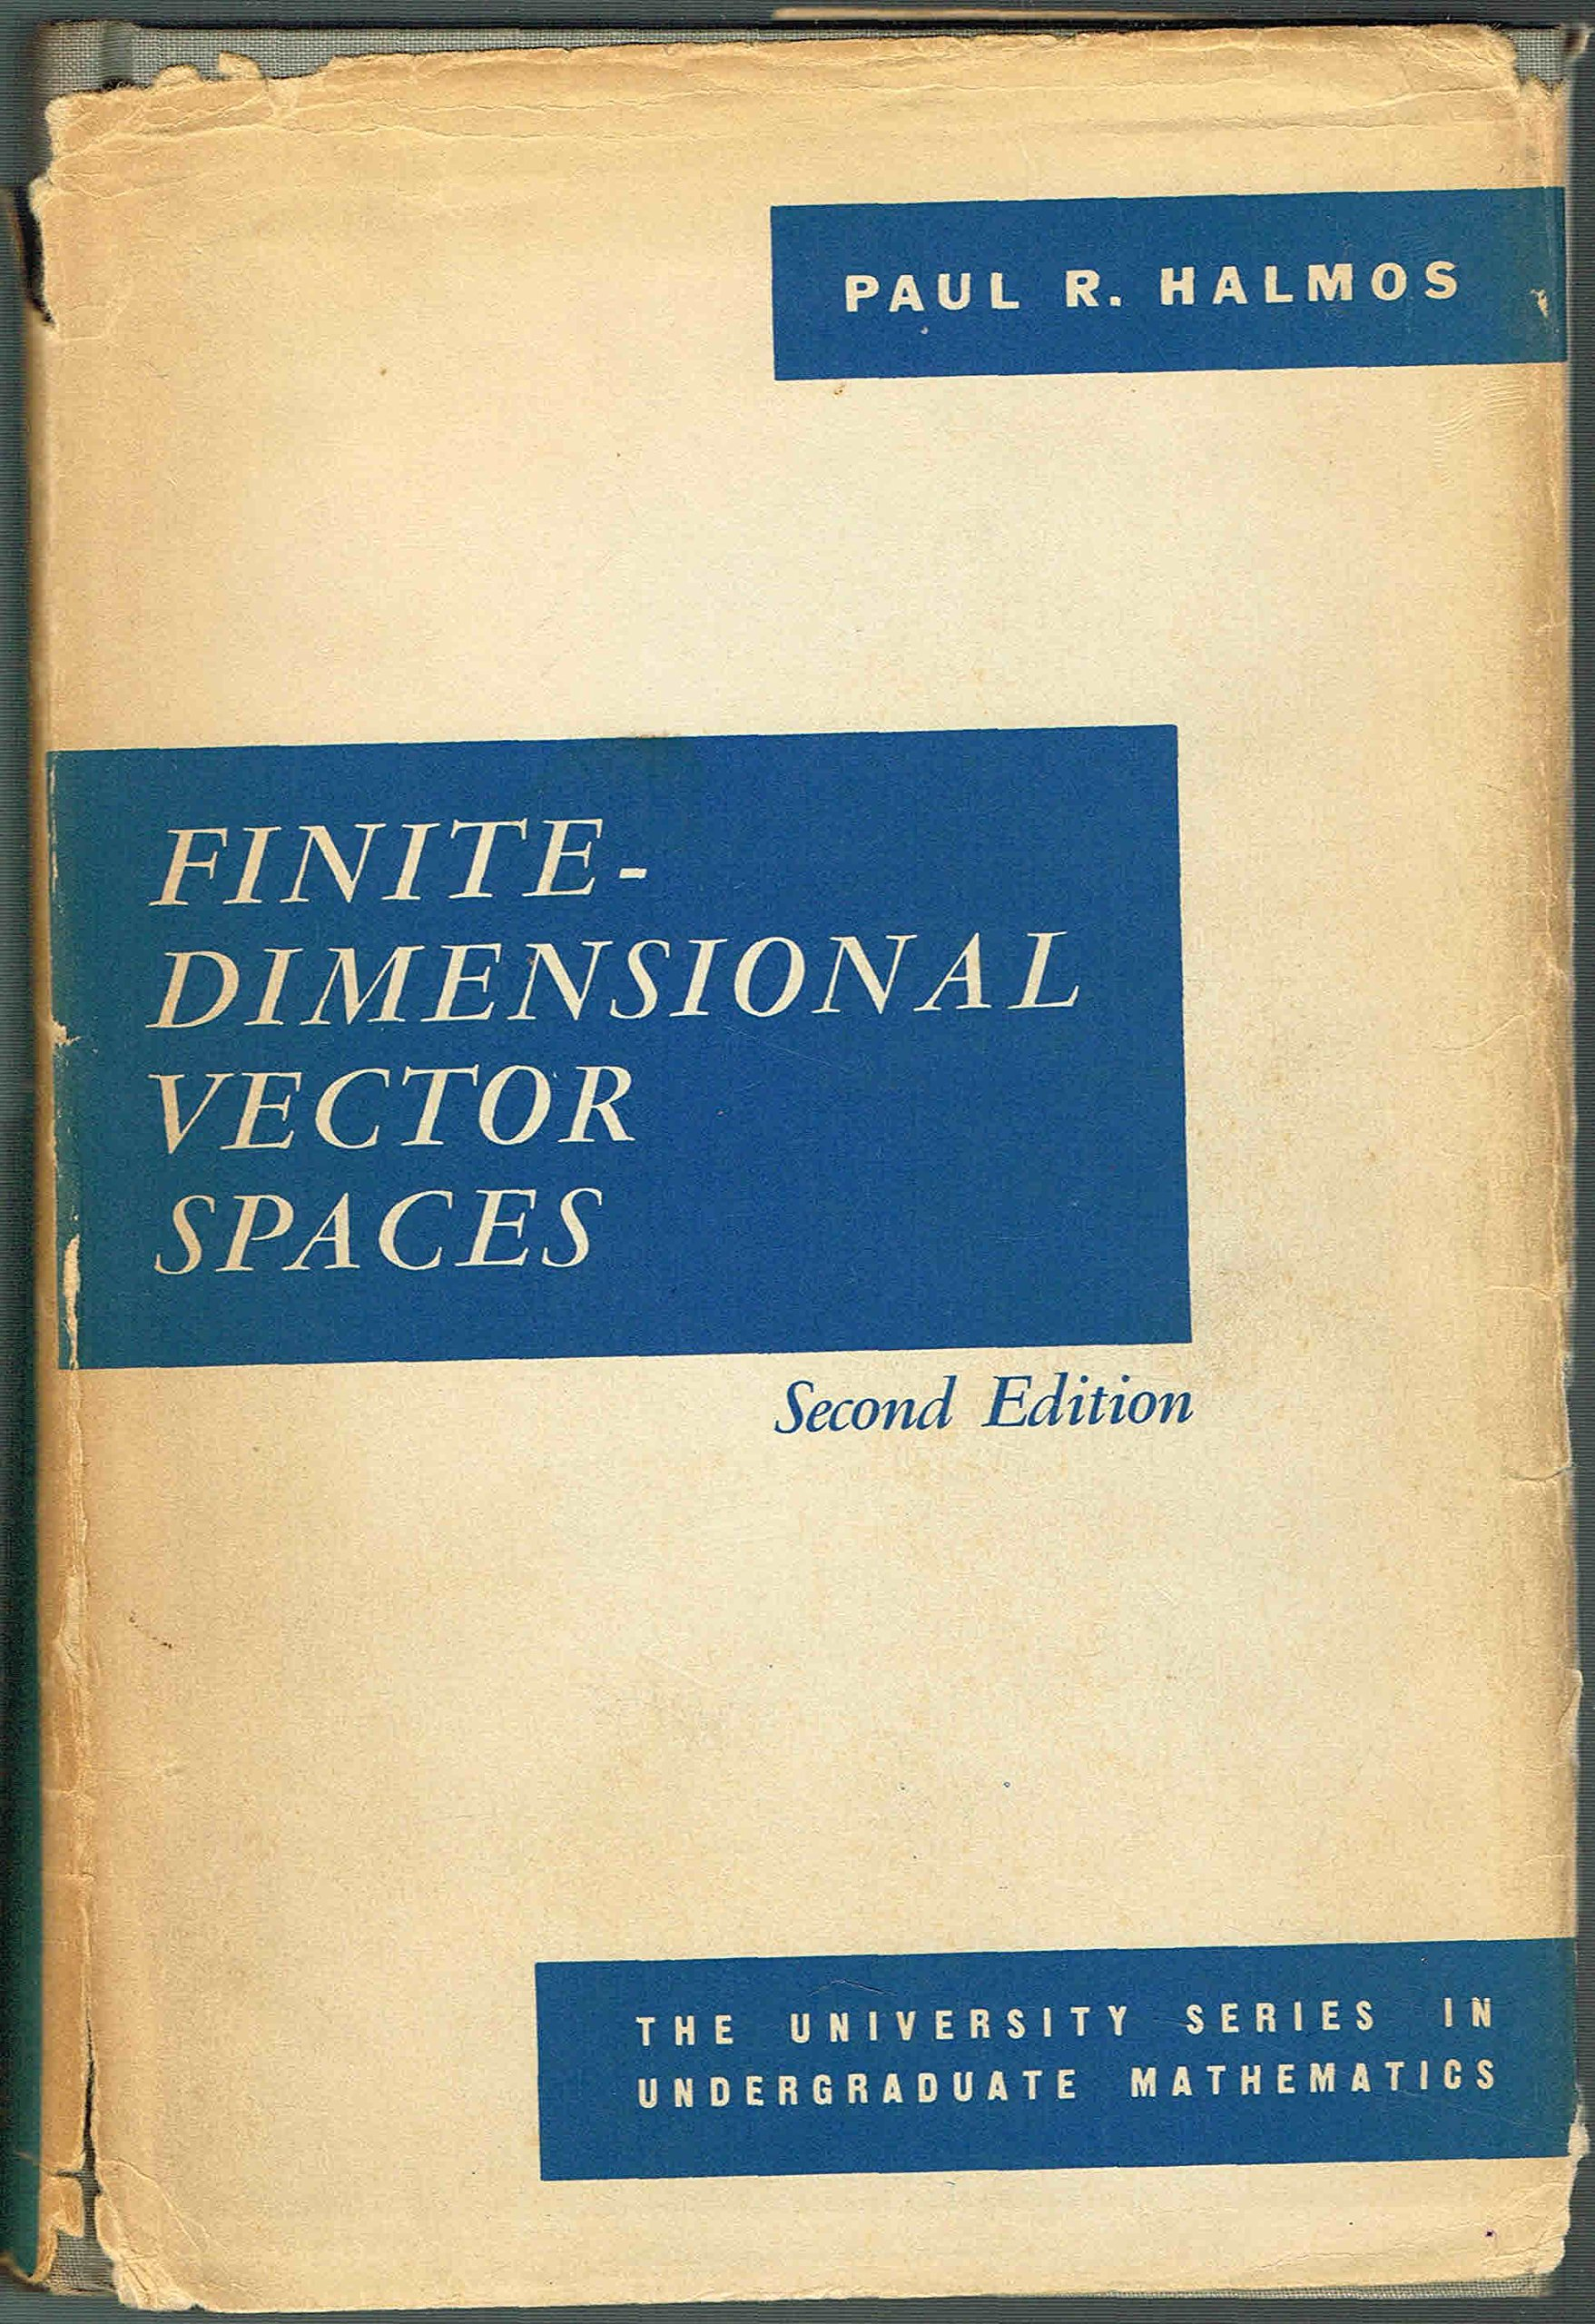 FINITE-DIMENSIONAL VECTOR SPACES, Second Edition